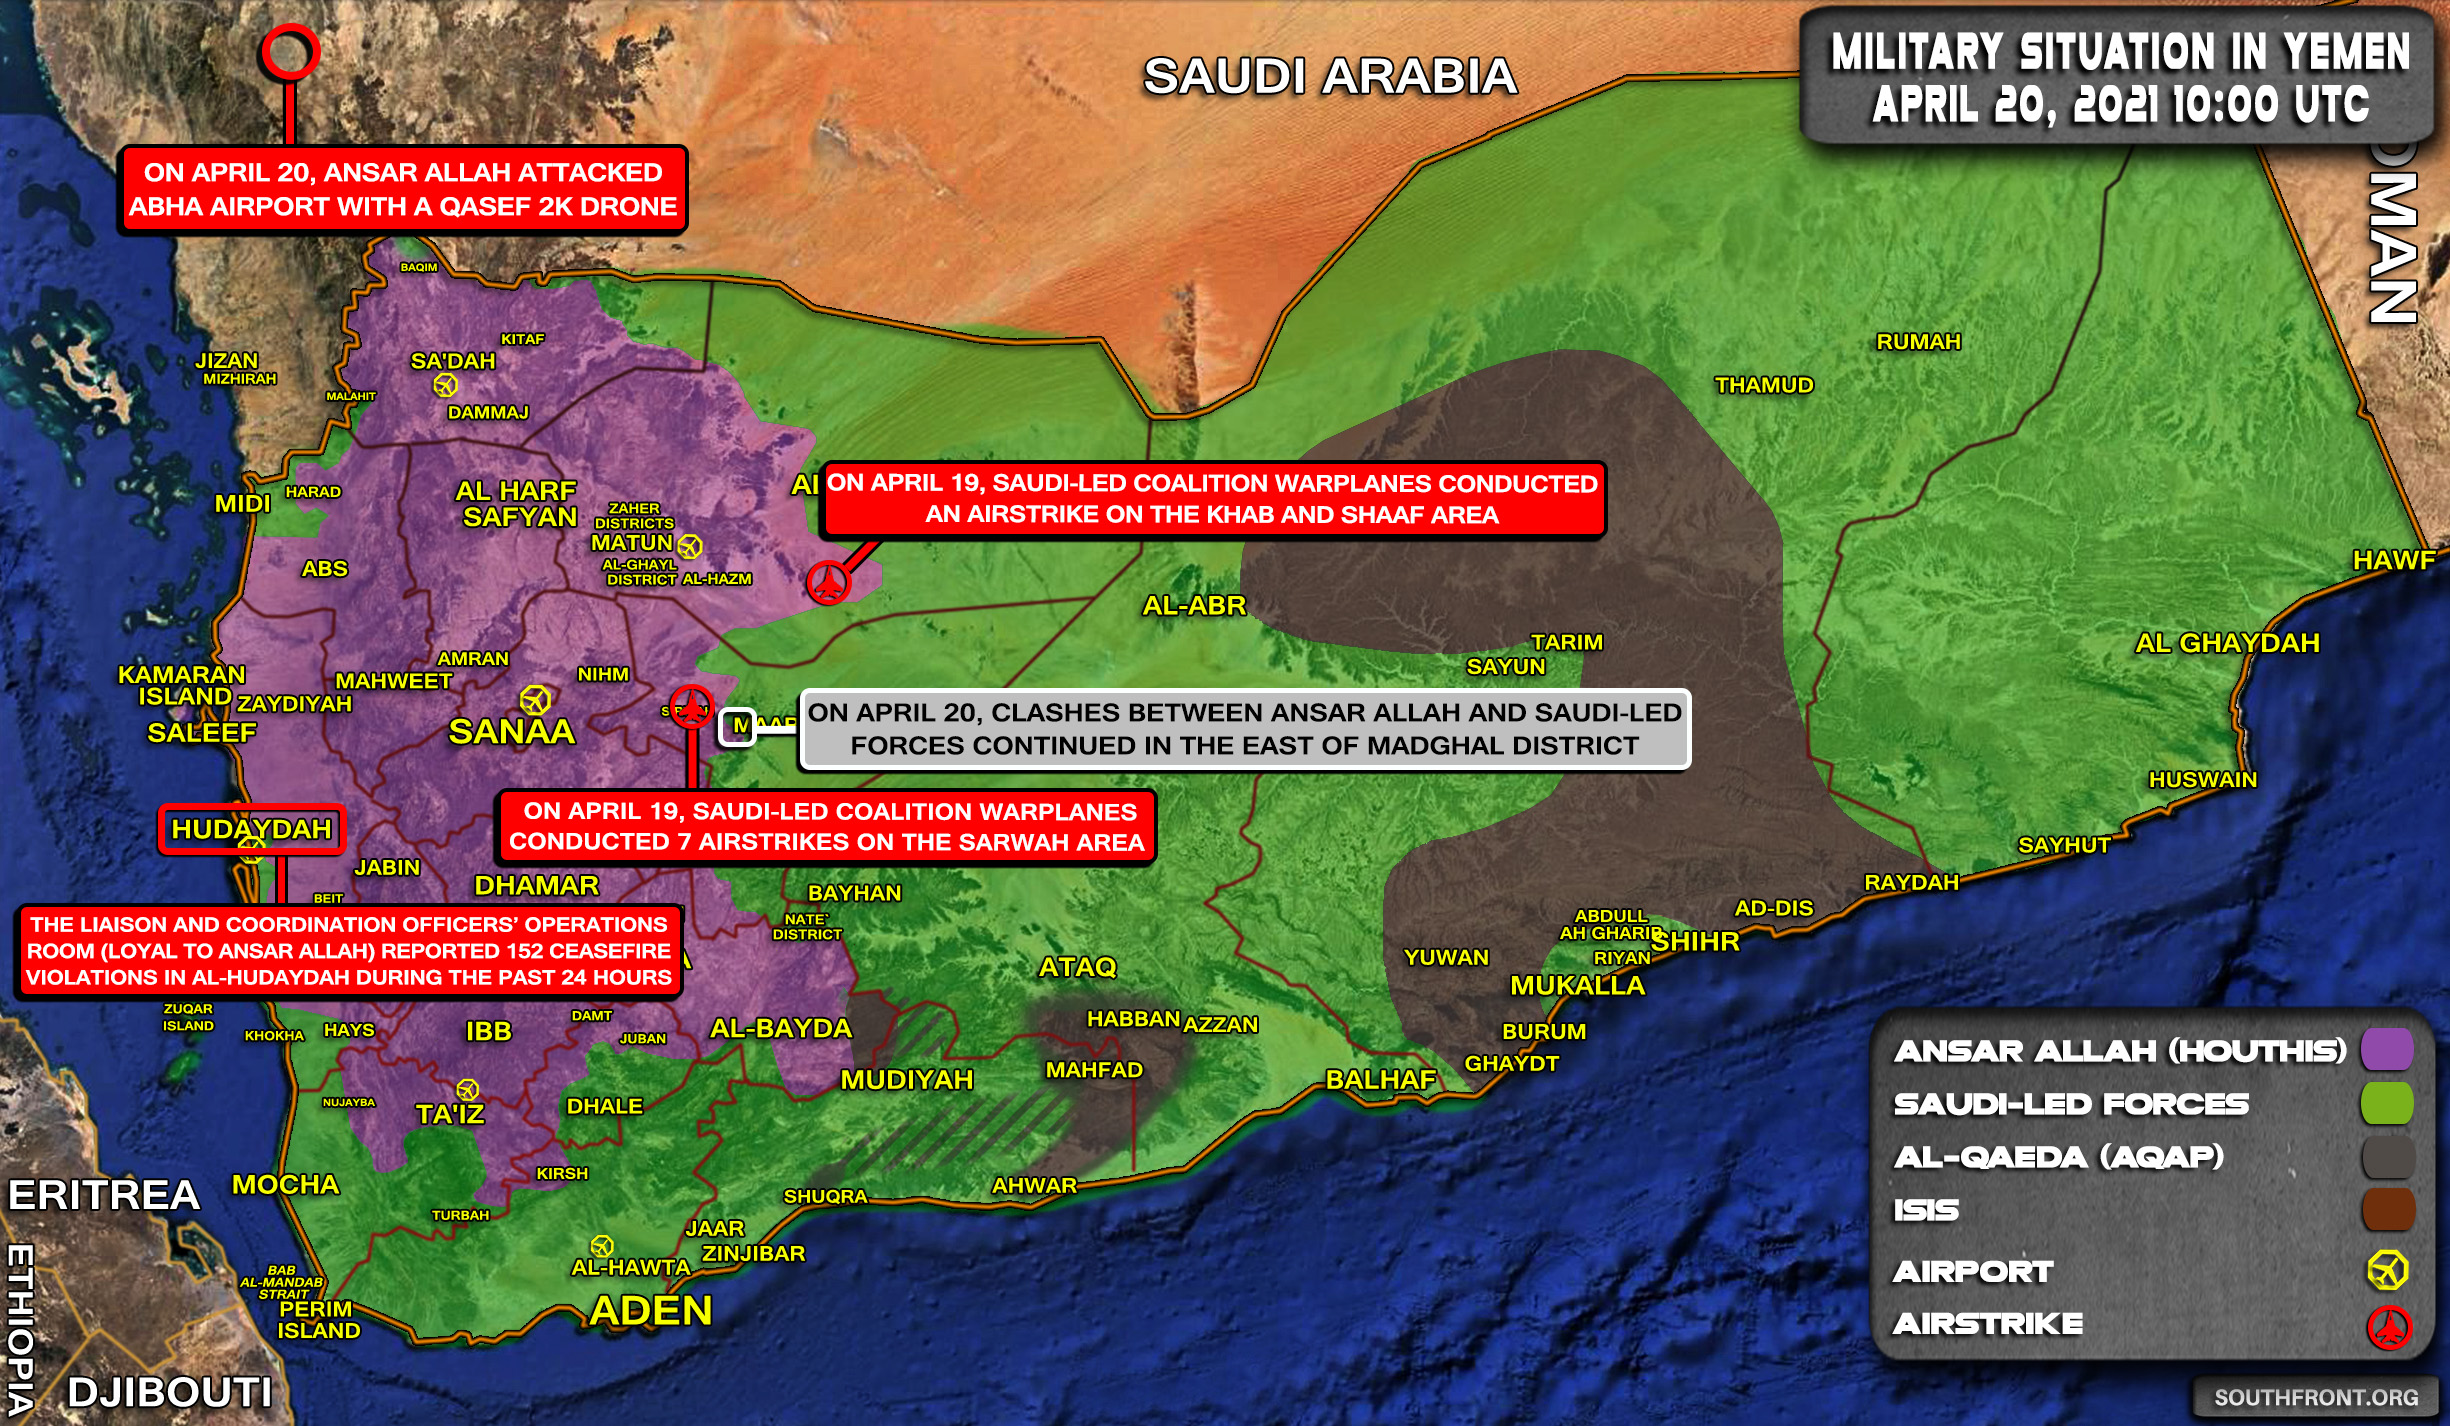 Military Situation In Yemen On April 20, 2021 (Map Update)